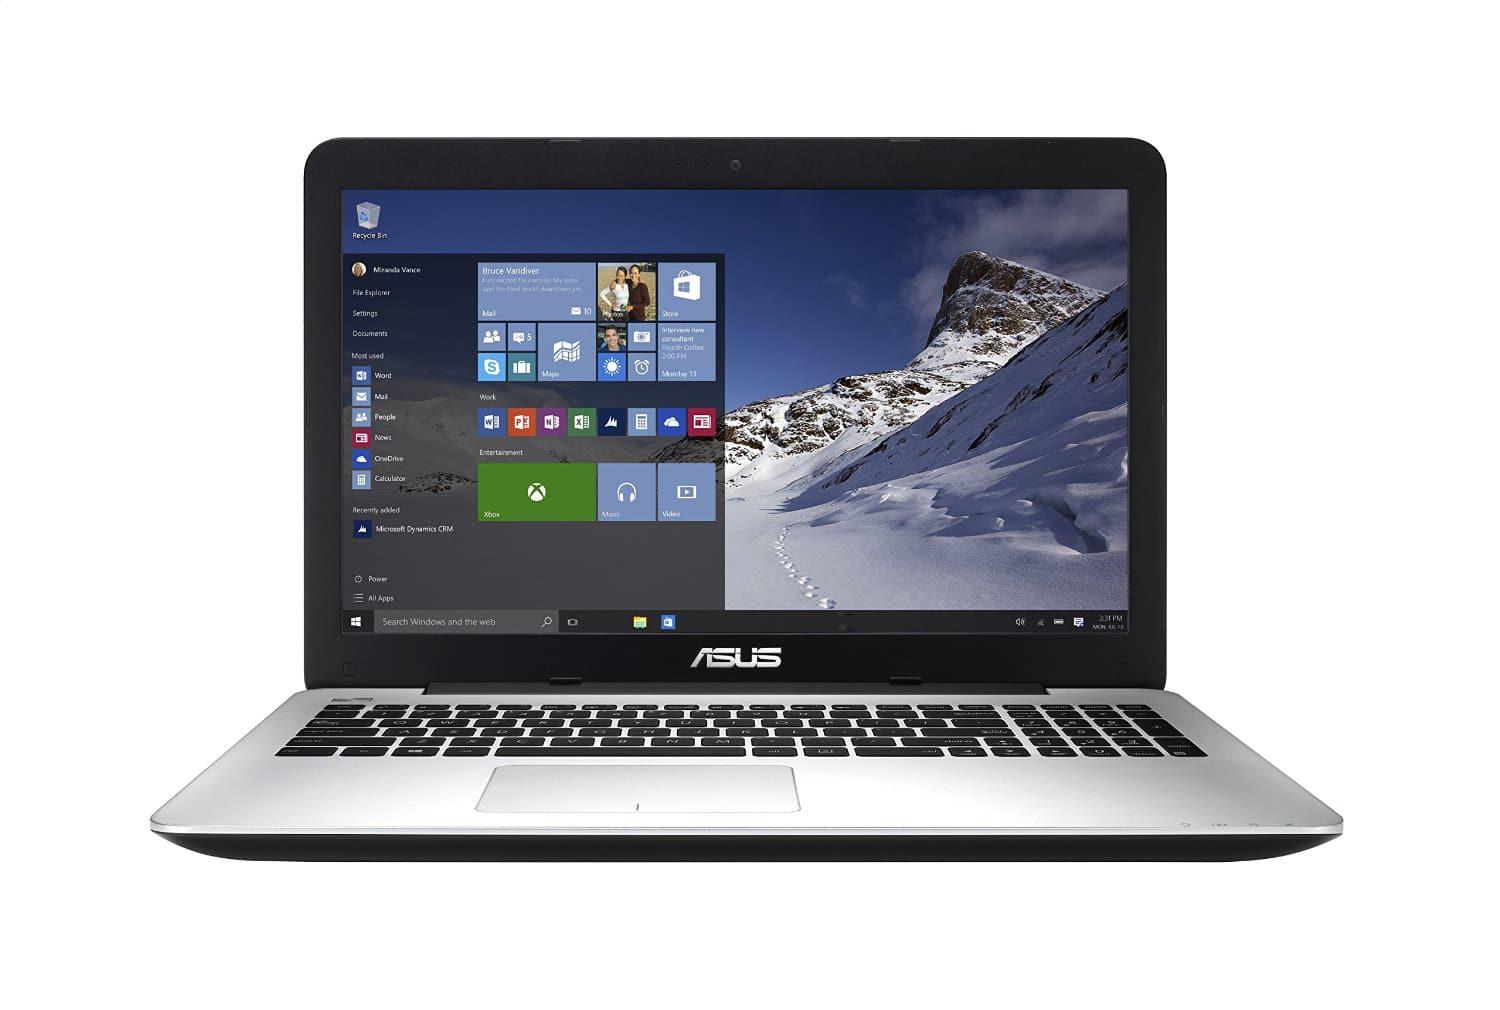 "ASUS F555LA-AB31 15.6"" Windows 10 Laptop (Pre-order): Core i3-5010U, 1920x1080, 4GB DDR3, 500GB HDD  $349 + Free Shipping"